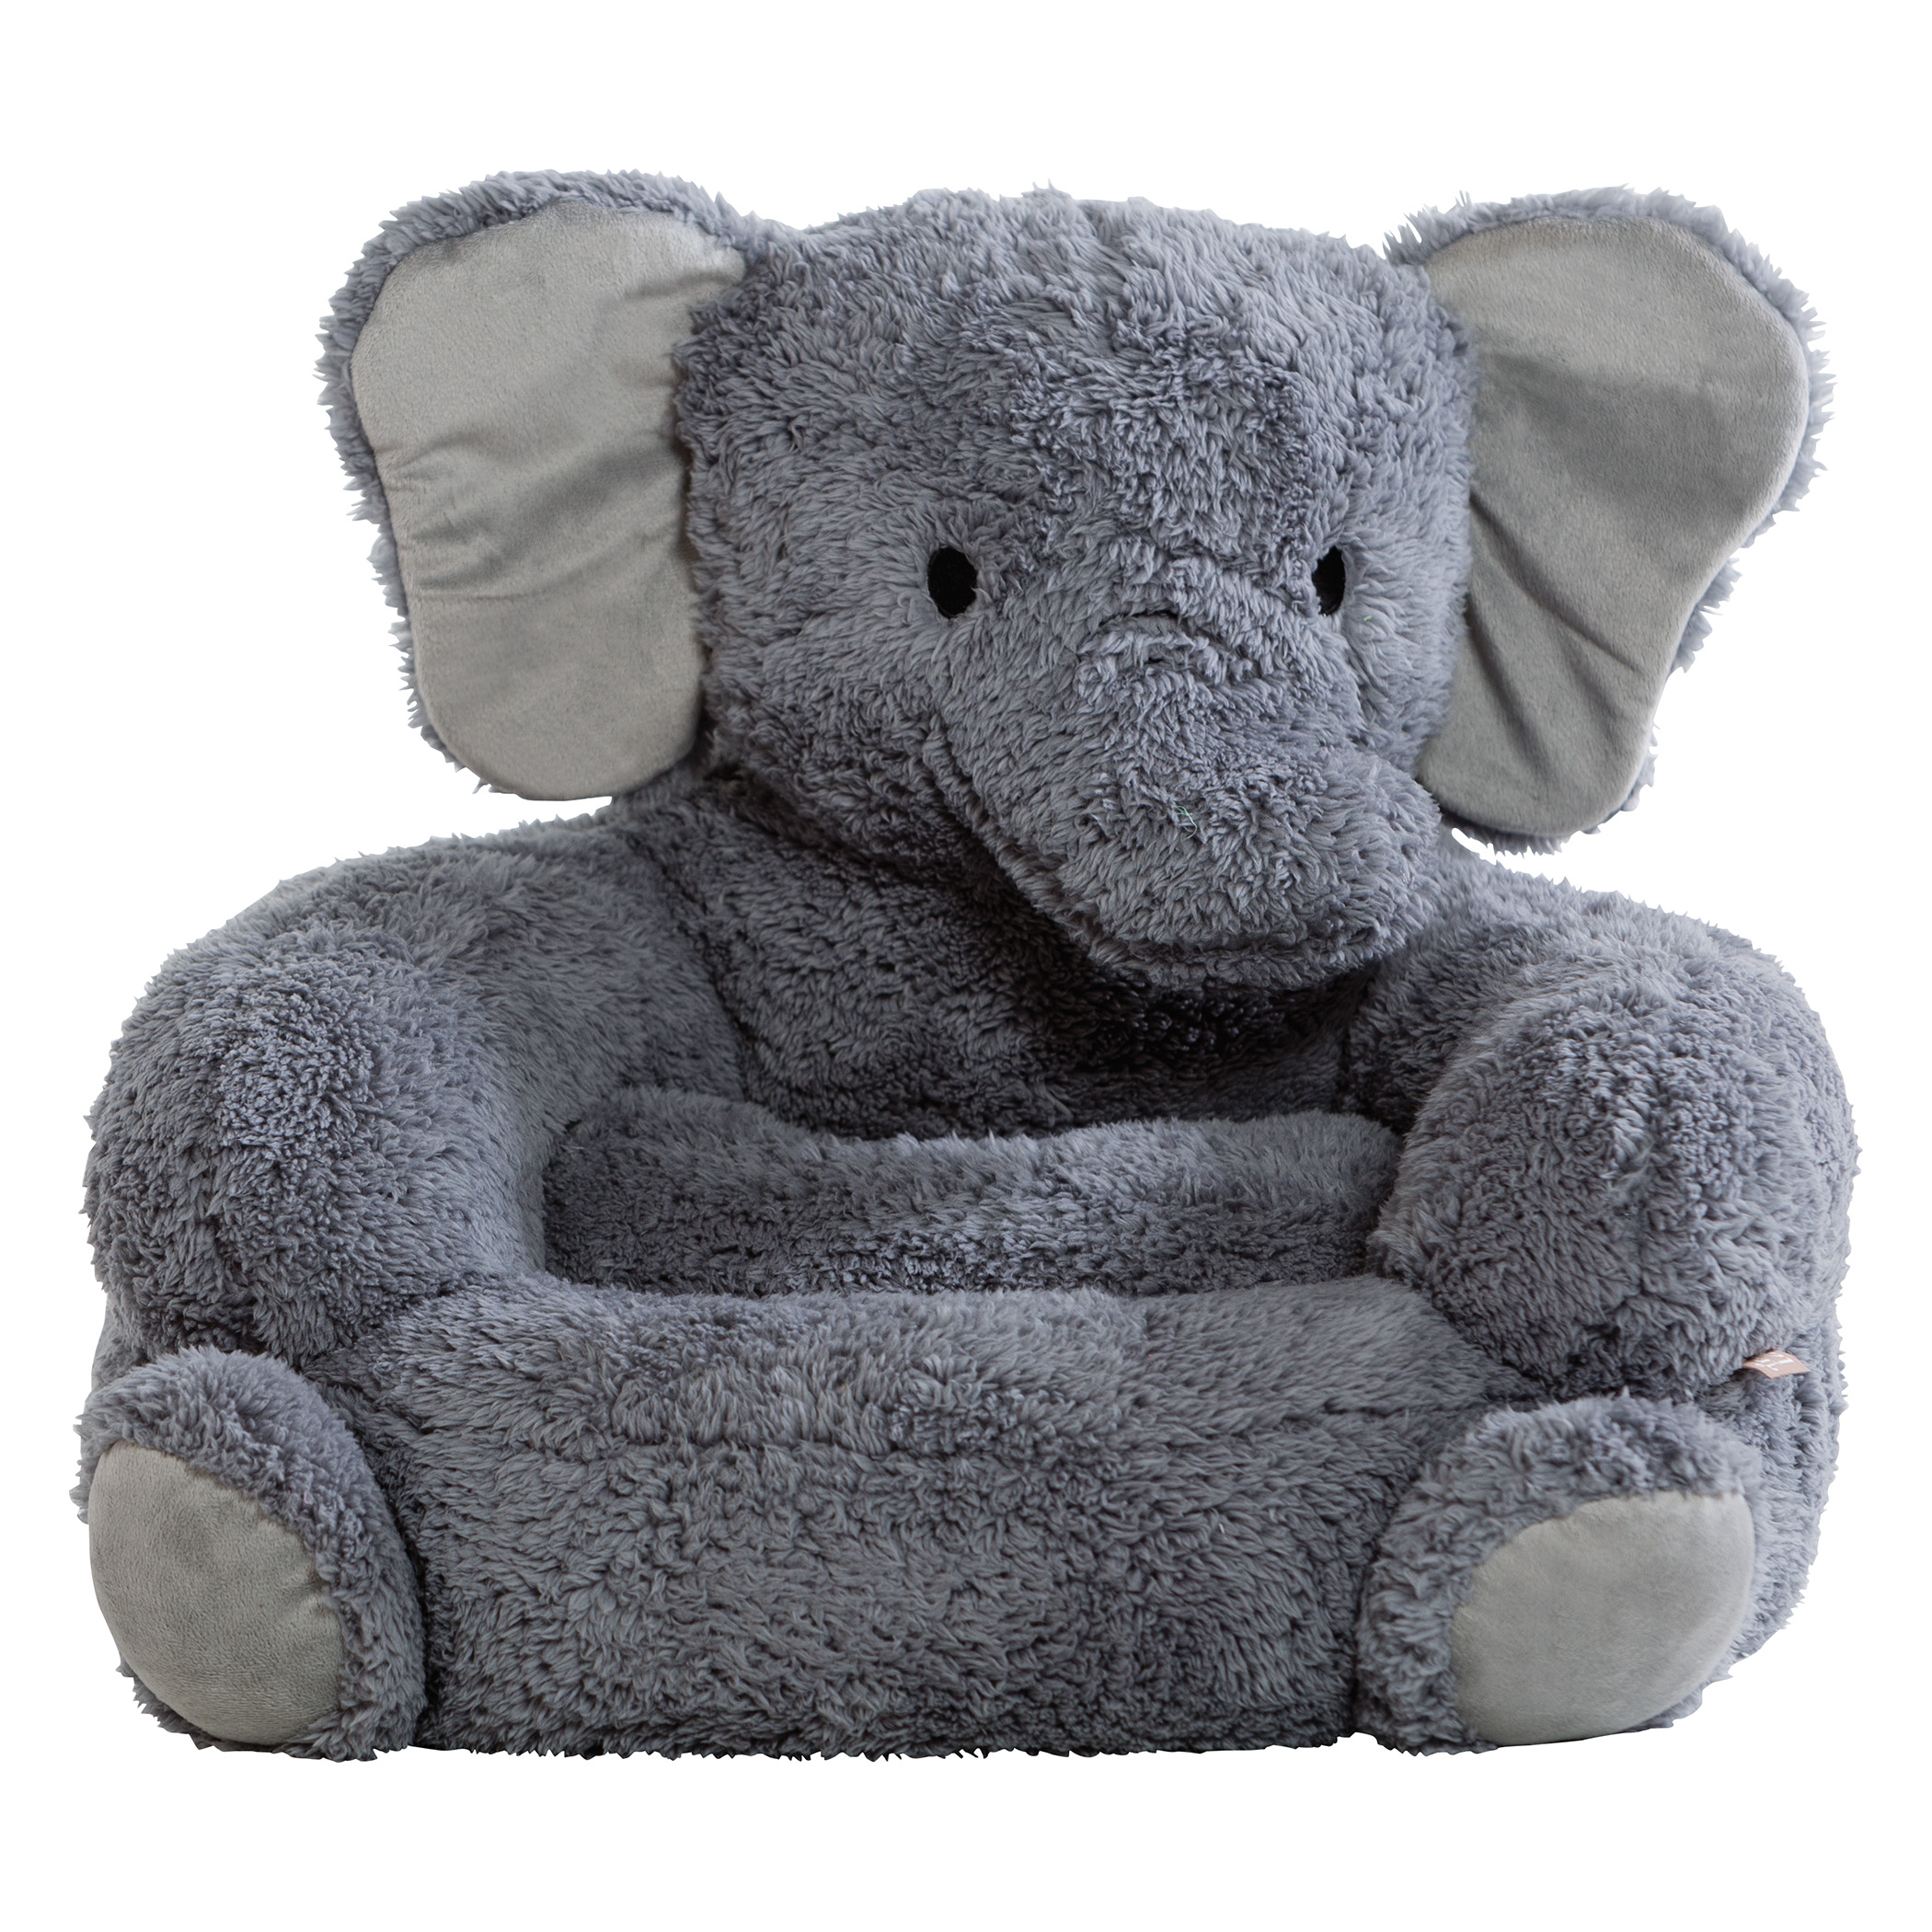 Toddler Soft Chairs Trend Lab Elephant Children 39s Plush Character Chair Baby